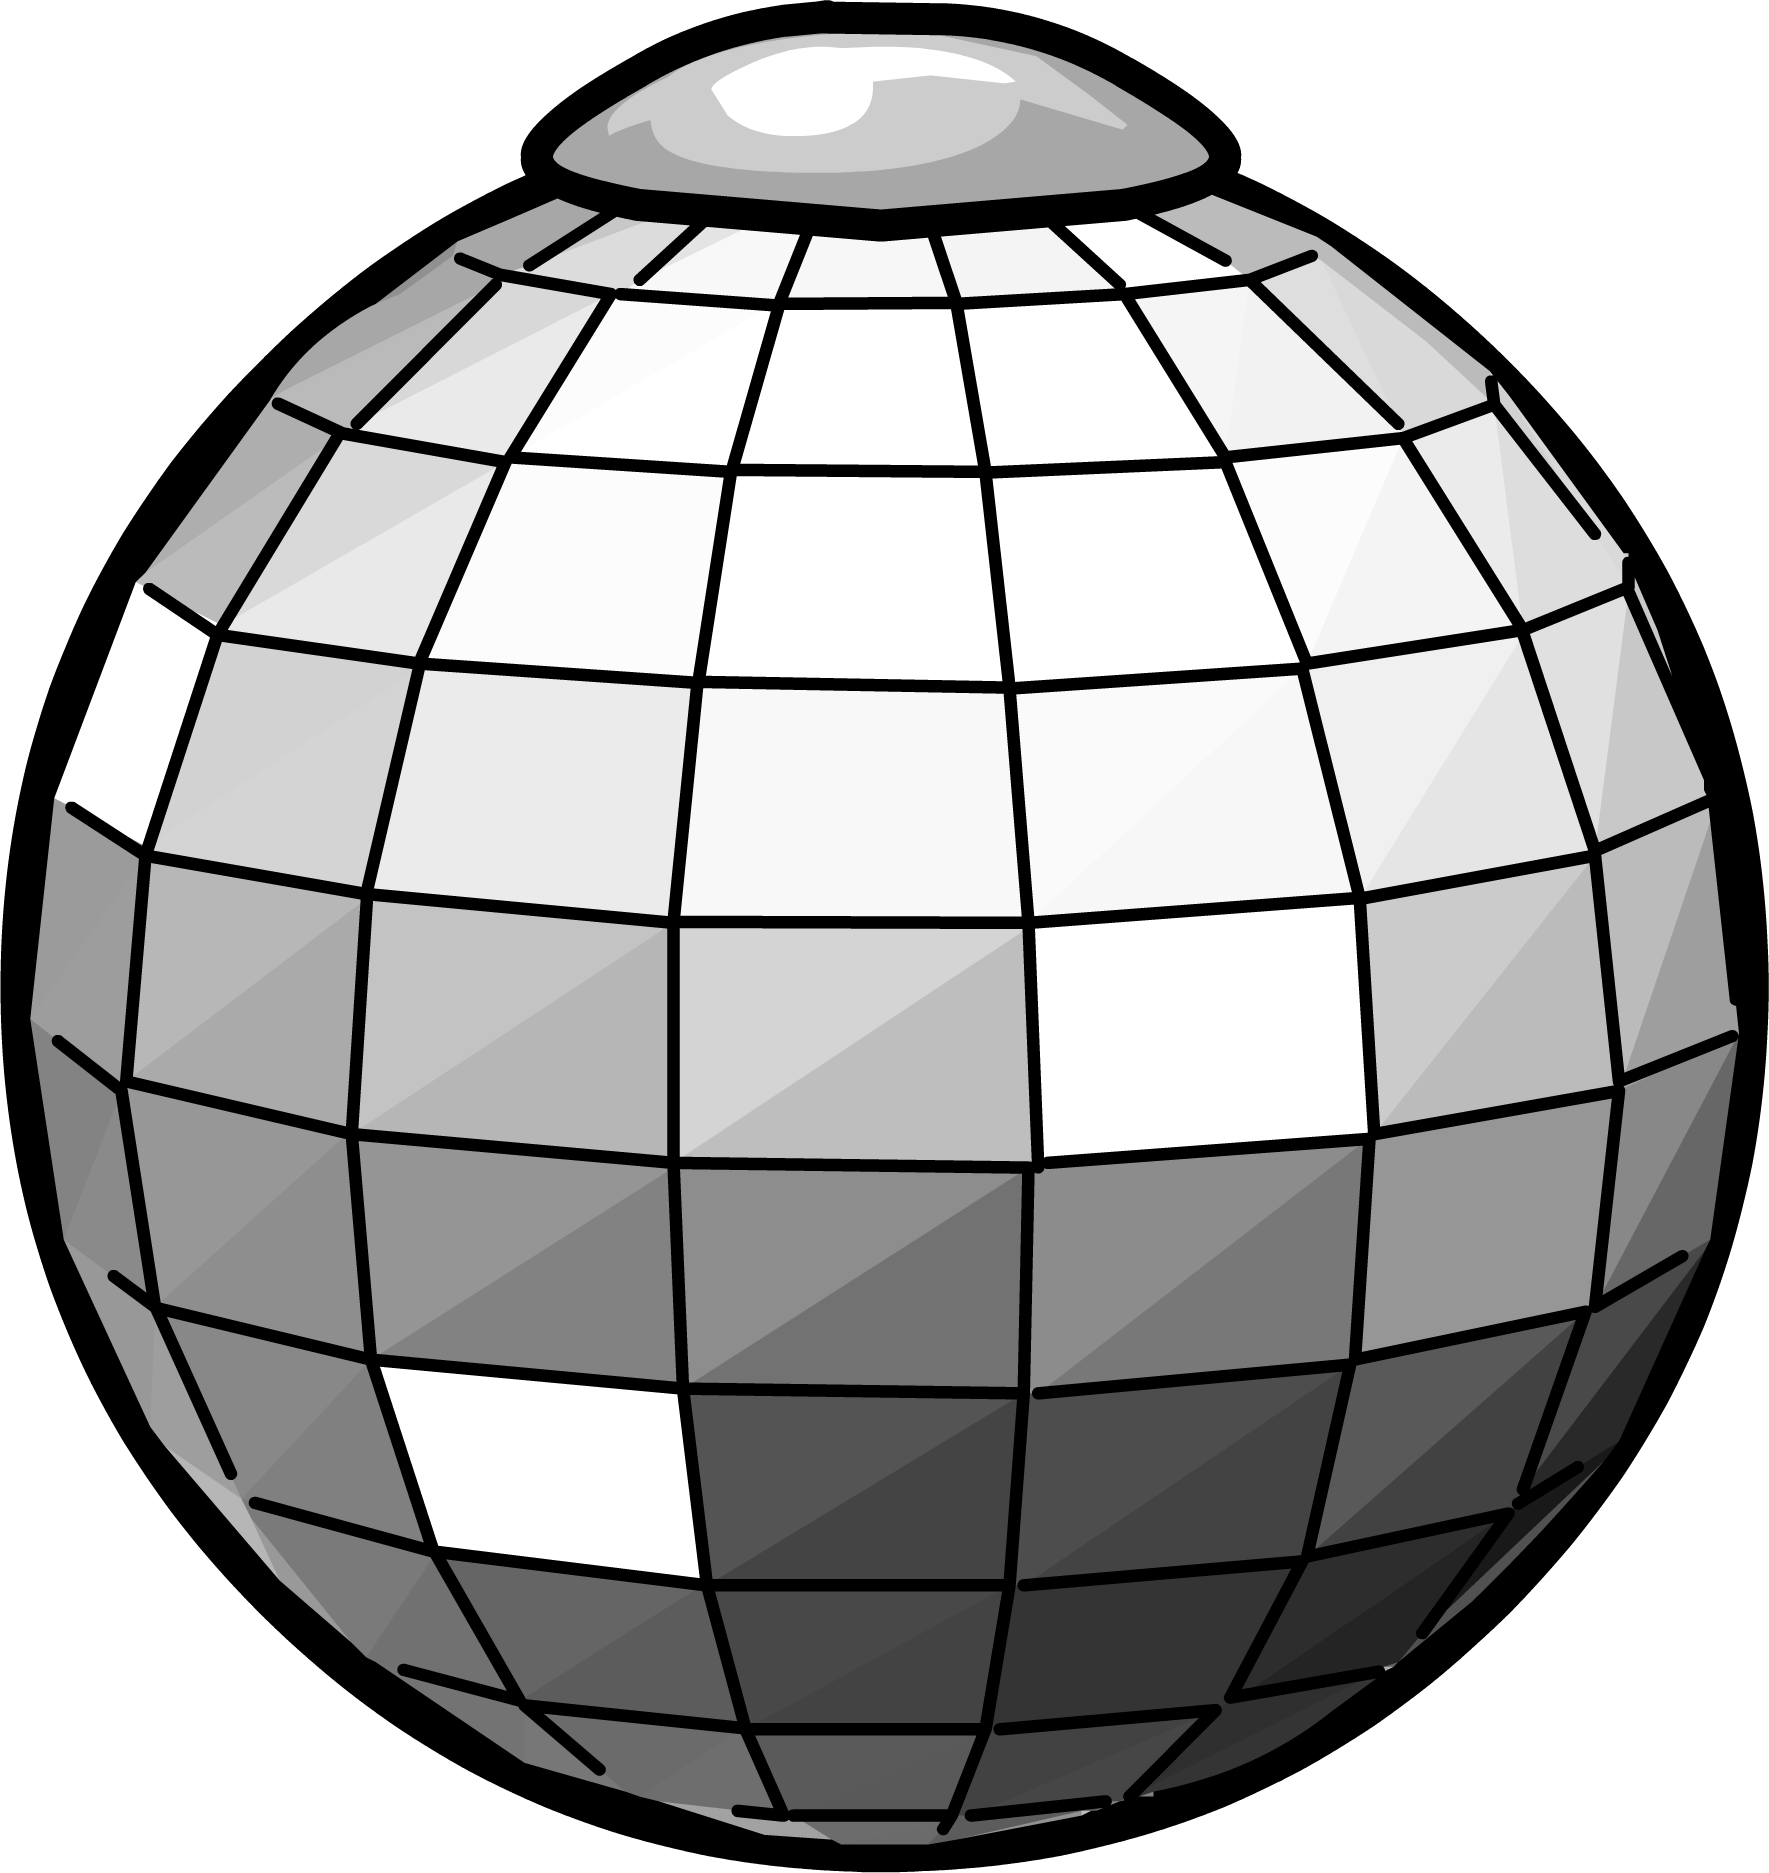 Disco ball png. Image club penguin wiki